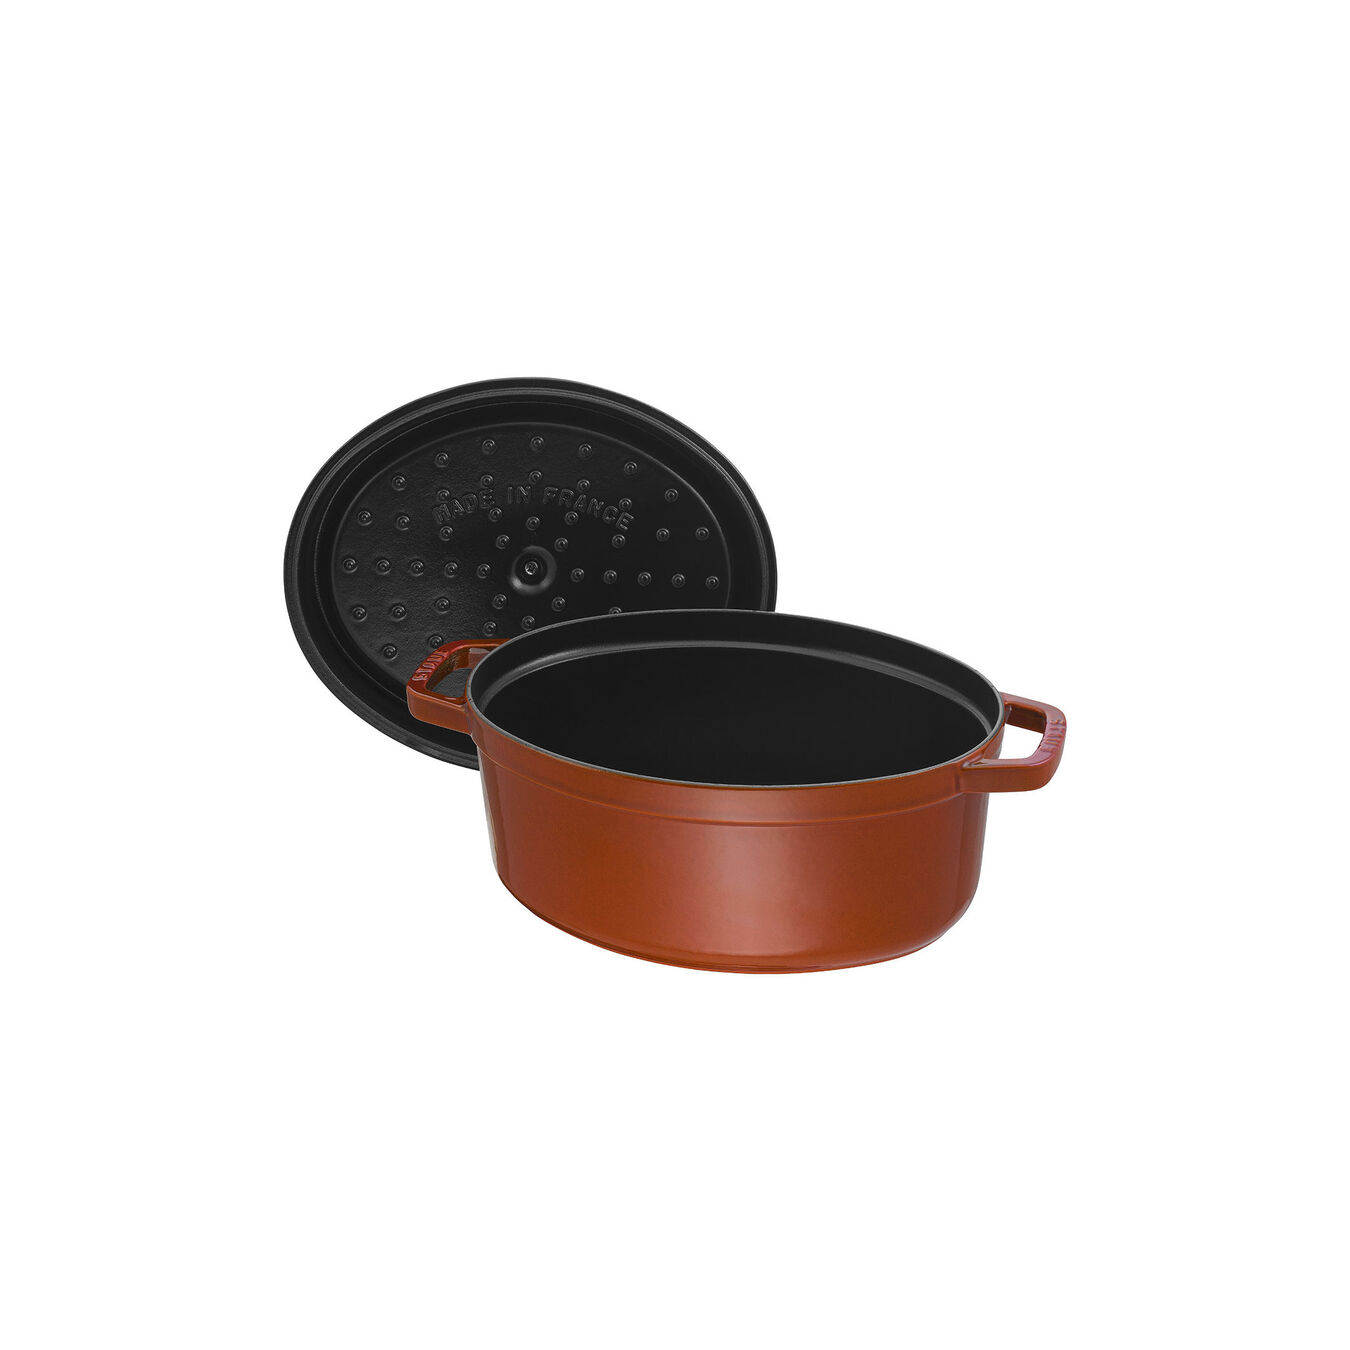 Cocotte ovale - 29 cm, cannella,,large 6